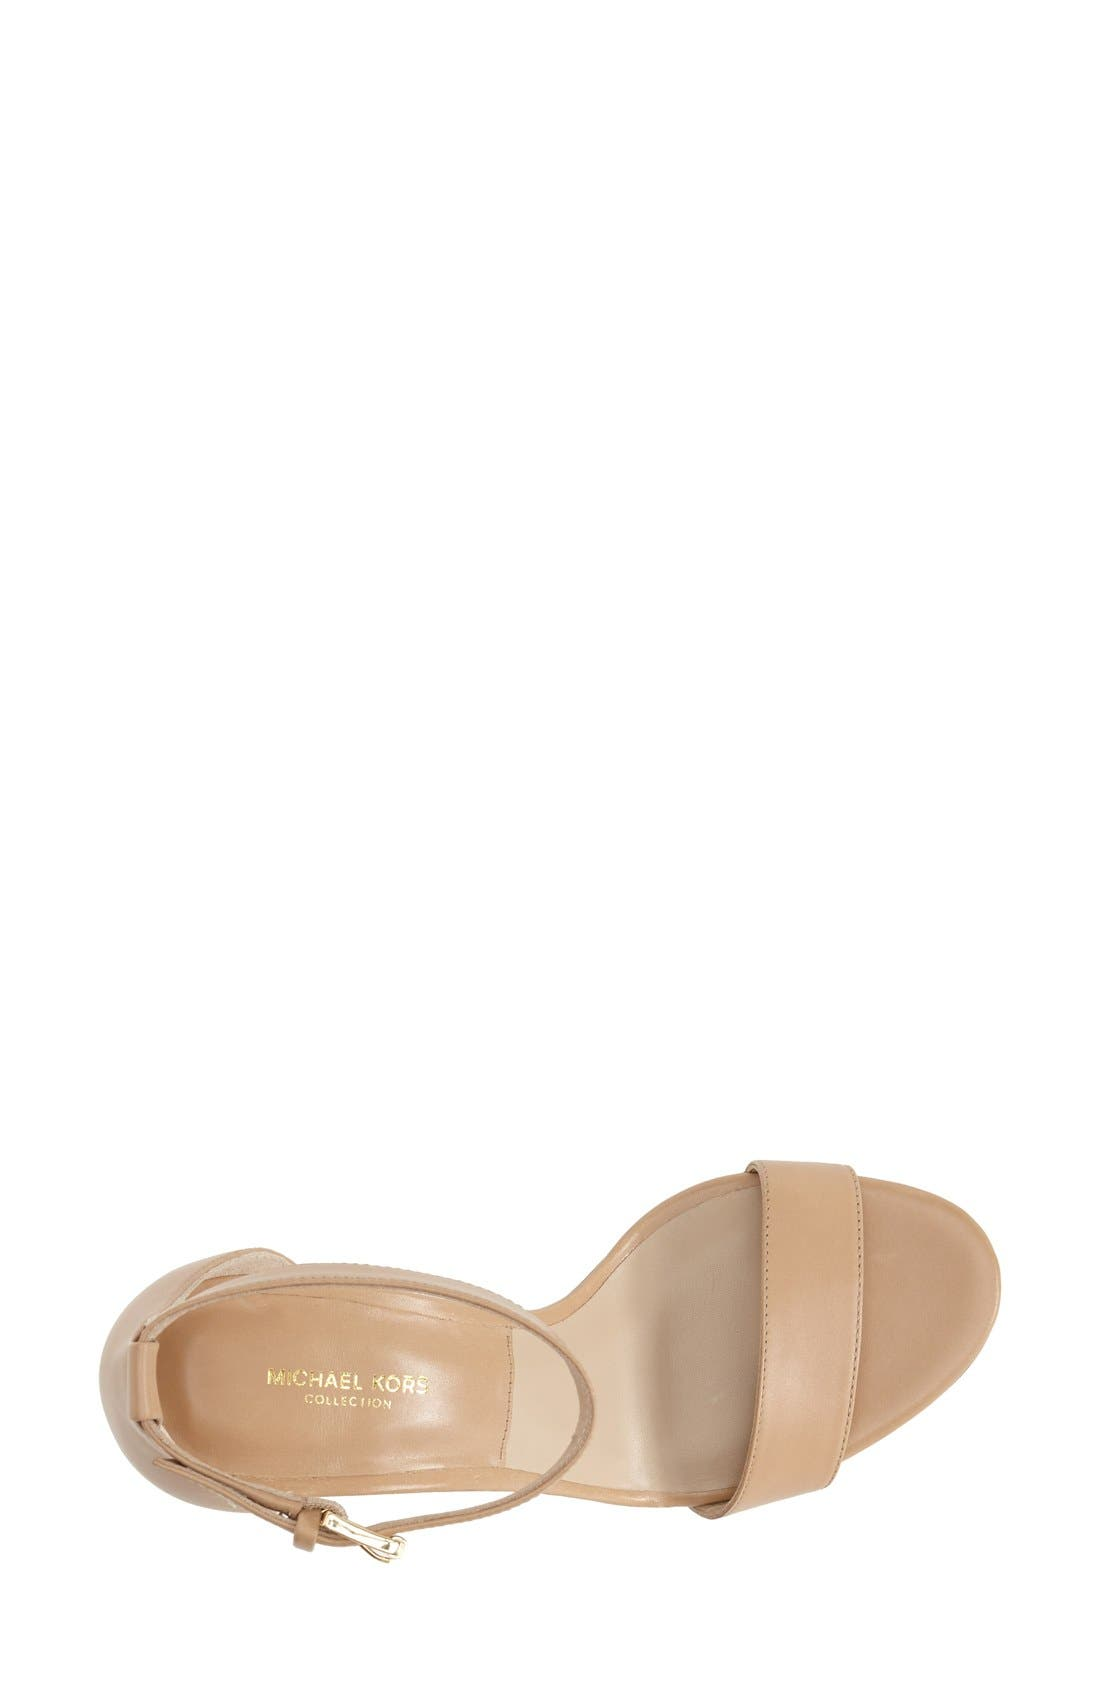 Alternate Image 7  - KORS Michael Kors 'Suri' Leather Sandal (Women)